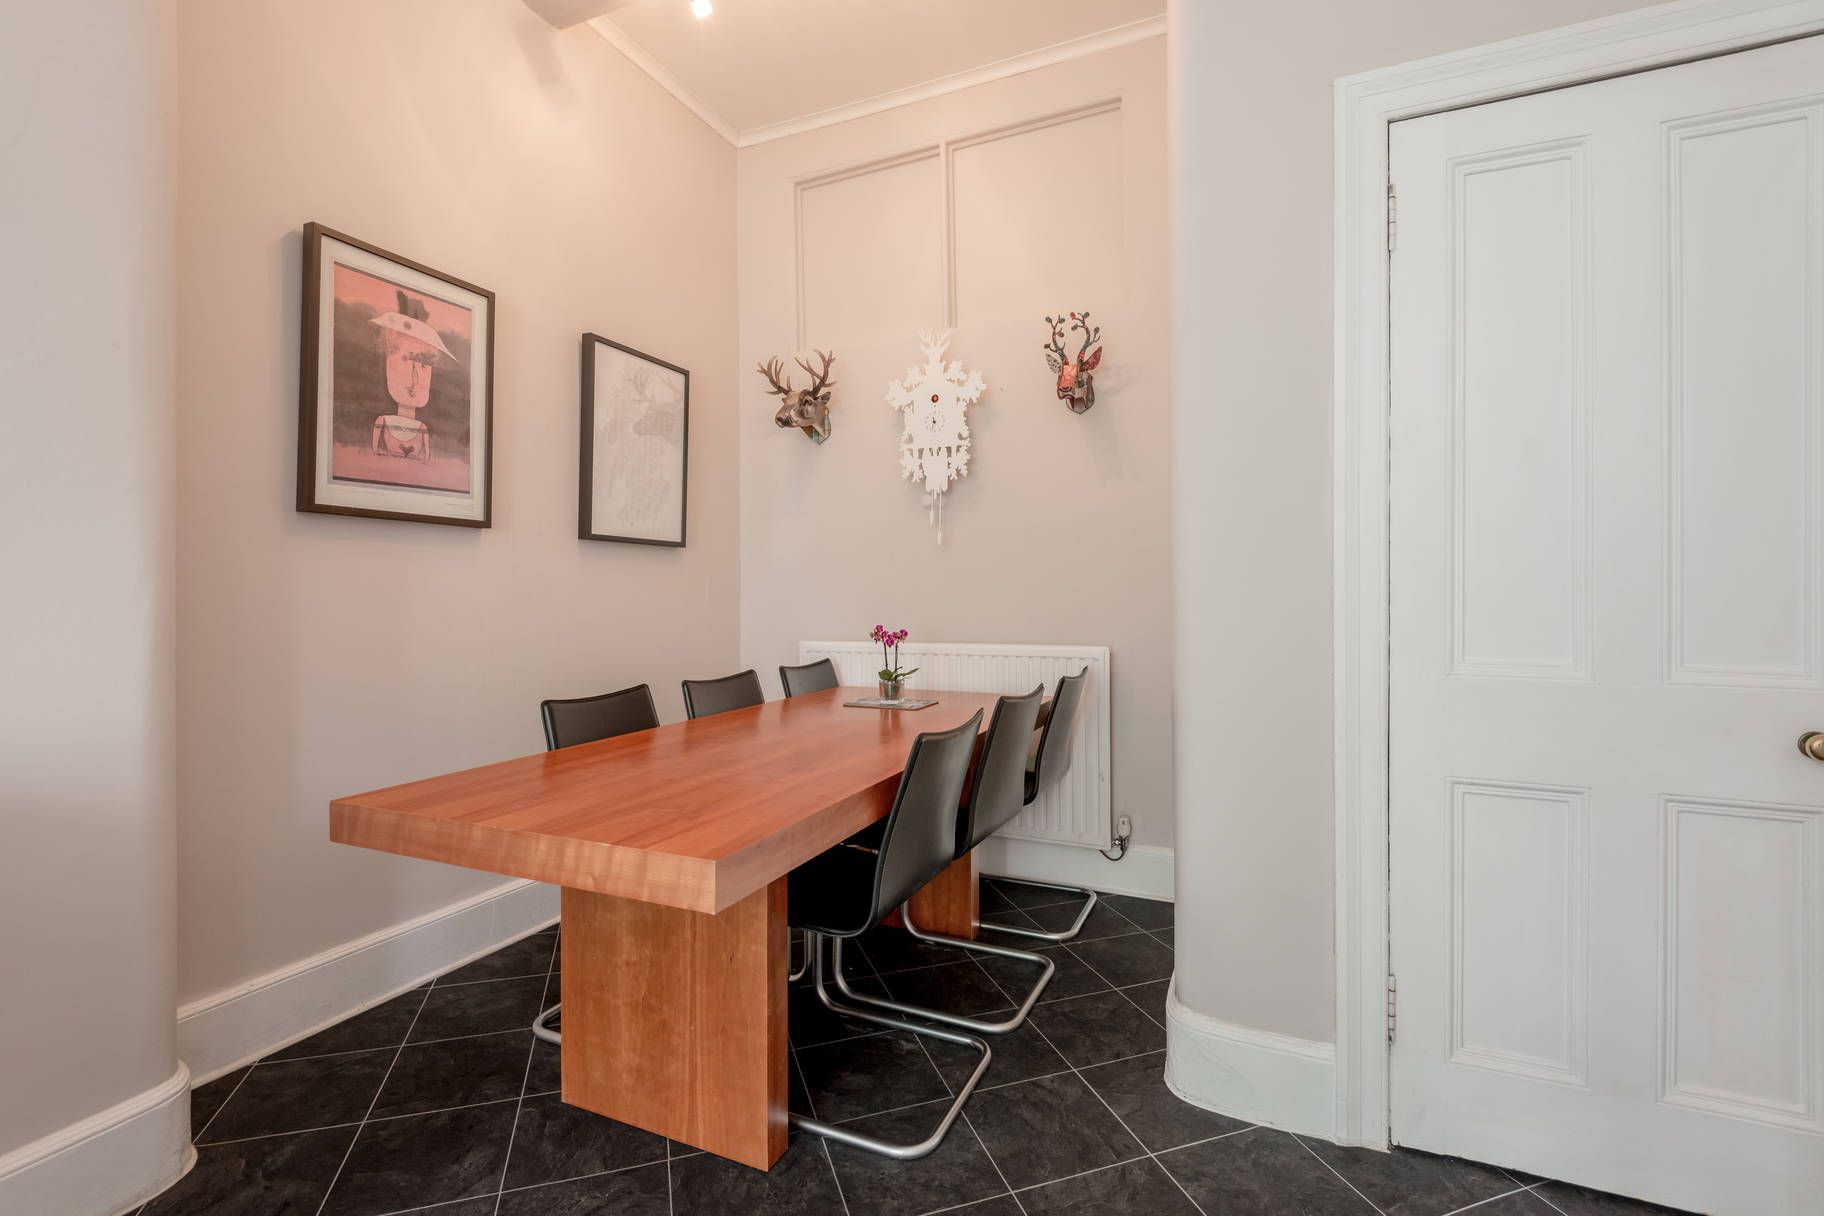 56/5 Spottiswoode Street, Marchmont - Photo 6